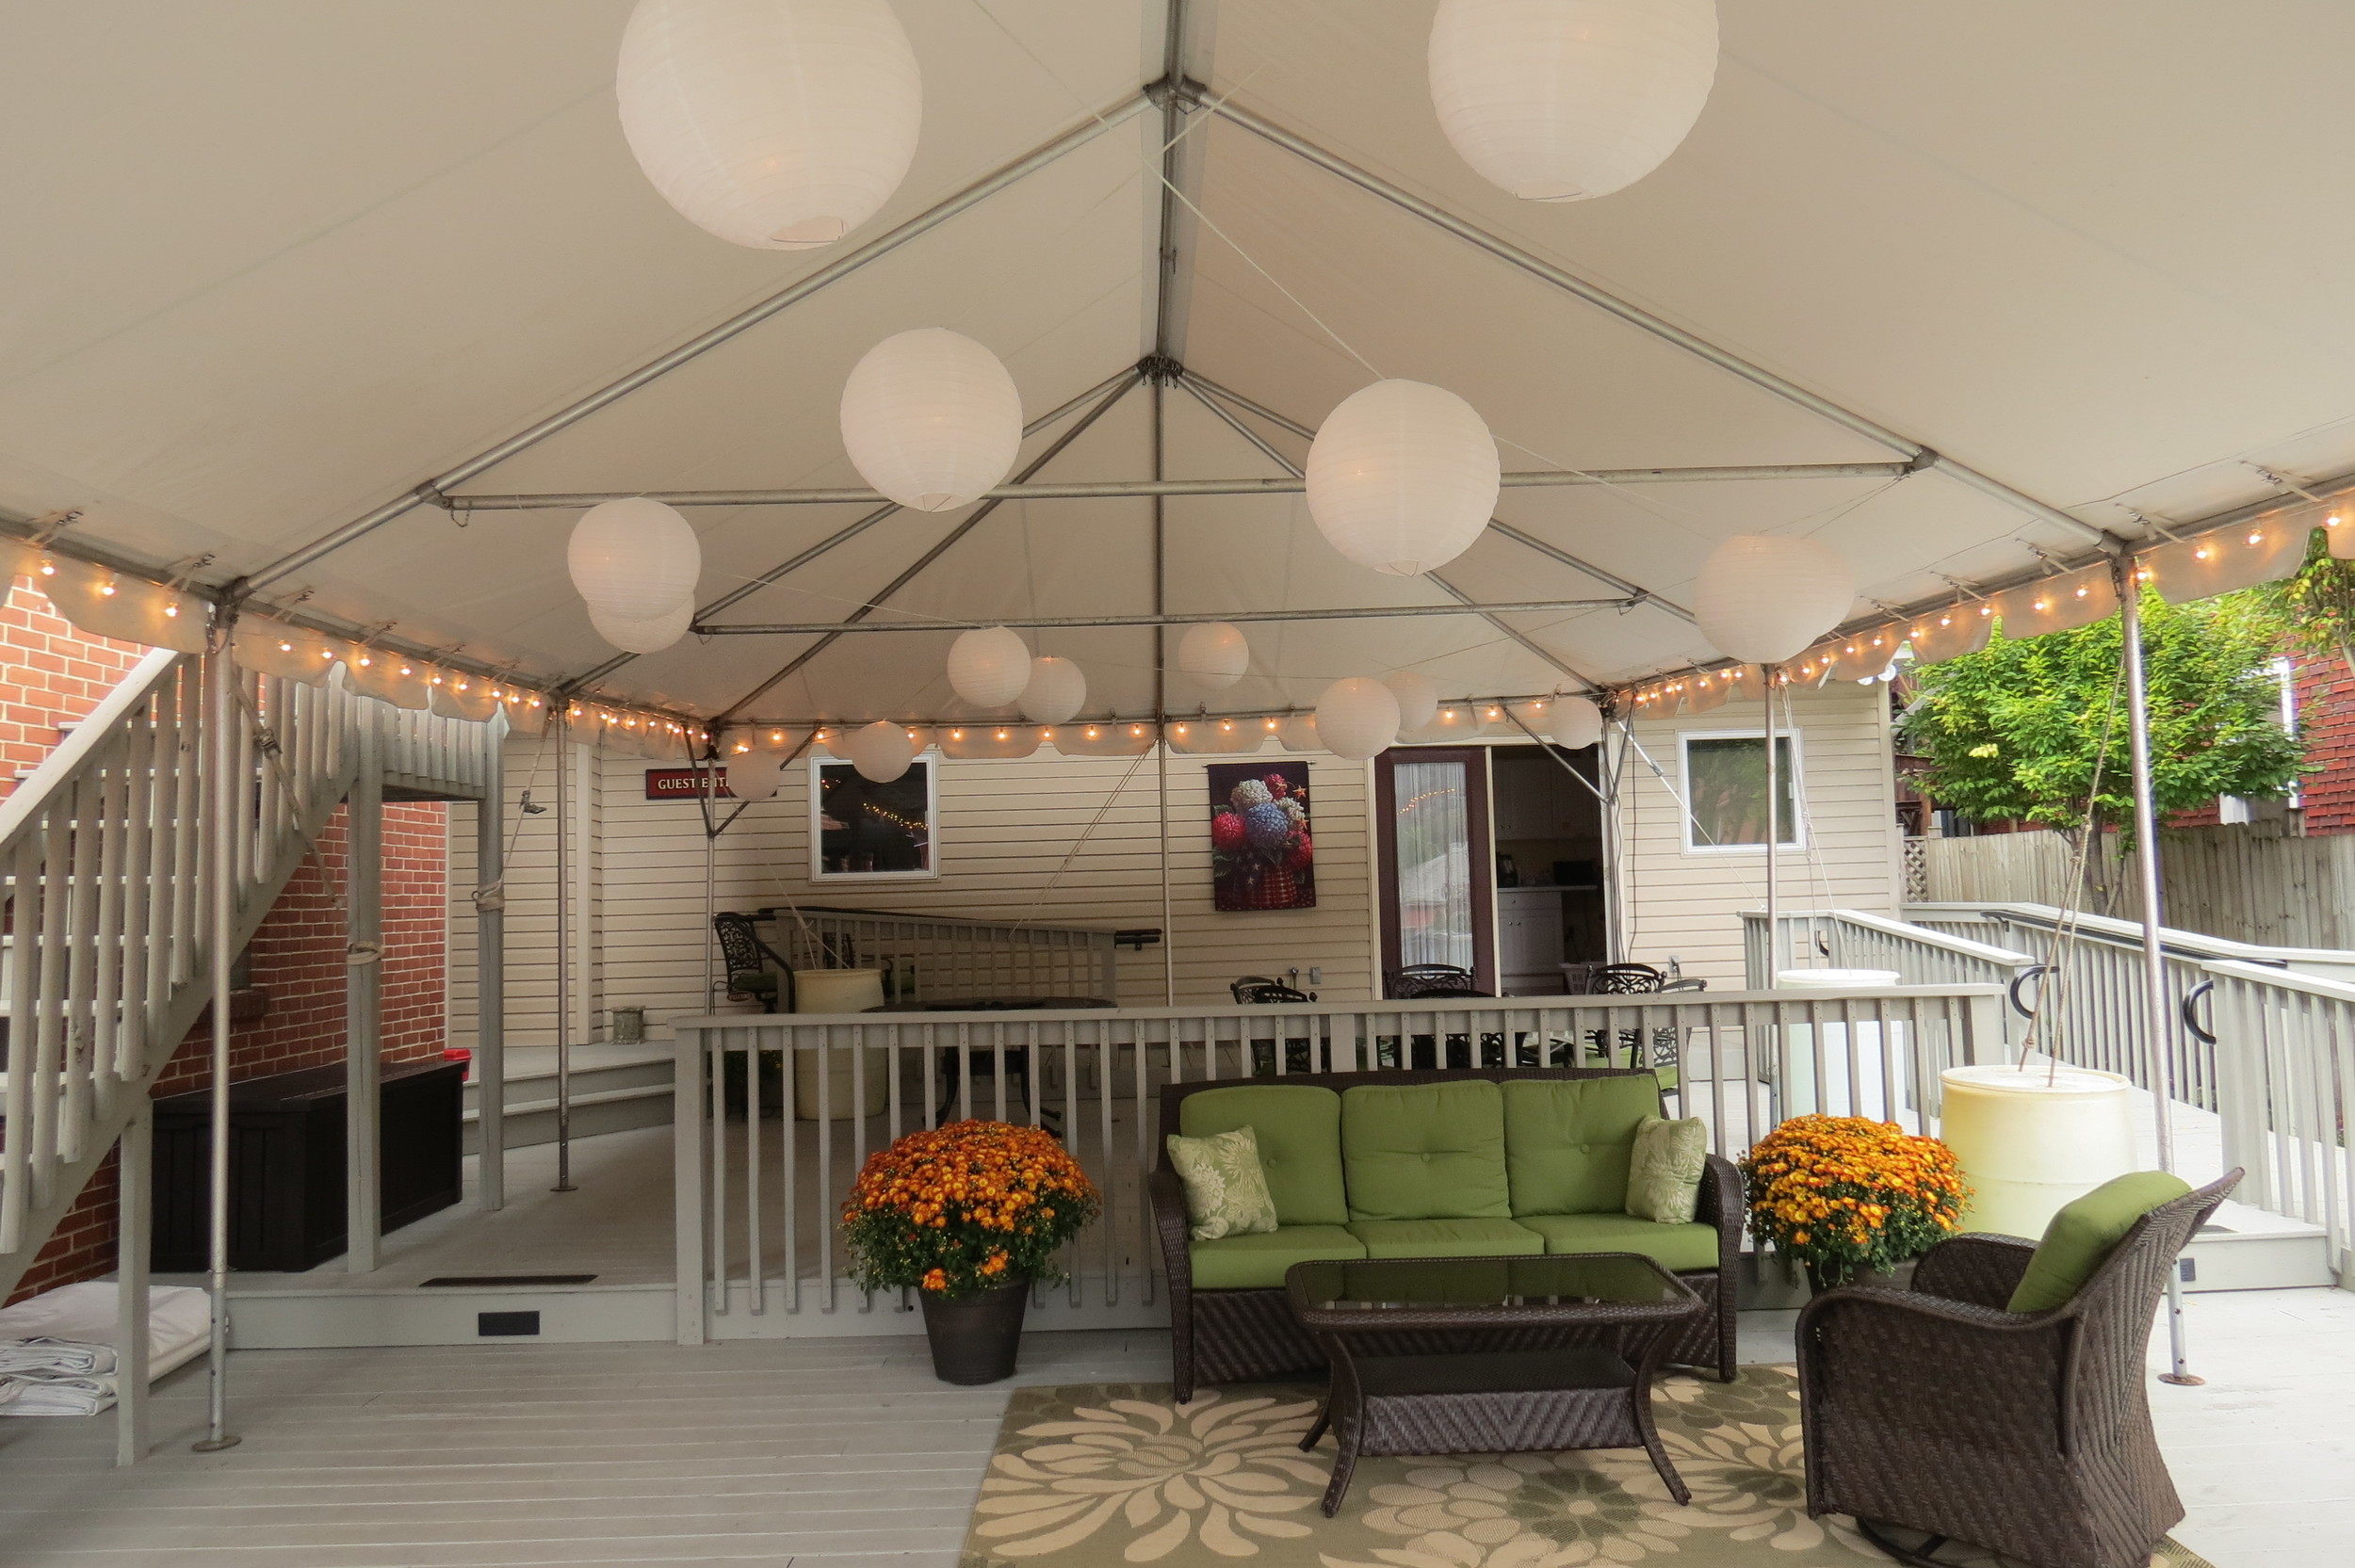 Tent on a multi-level patio